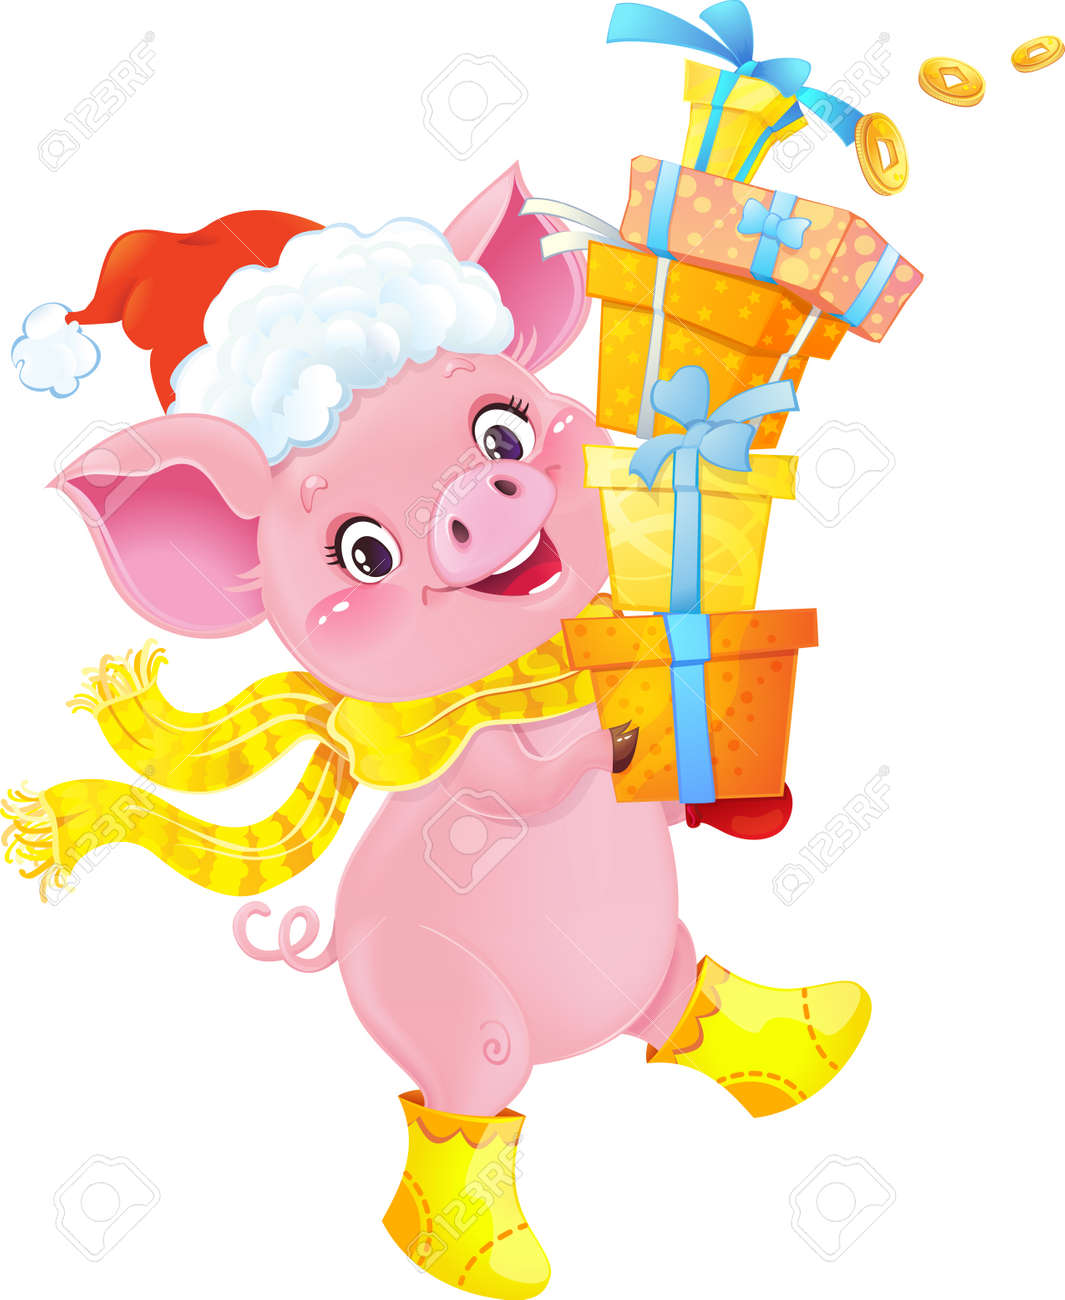 Yellow Earthy Pig with Gift Boxes. Cute Symbol of Chinese Horoscope. Cute Piglet for the Chinese New Year. Pig is a symbol of the approaching New 2019 year. Symbol of Chinese horoscope.Happy 2019 New Year card. Funny piglet congratulates on holiday. Image contains gradients, transparency, blending modes, meshes. - 111999556